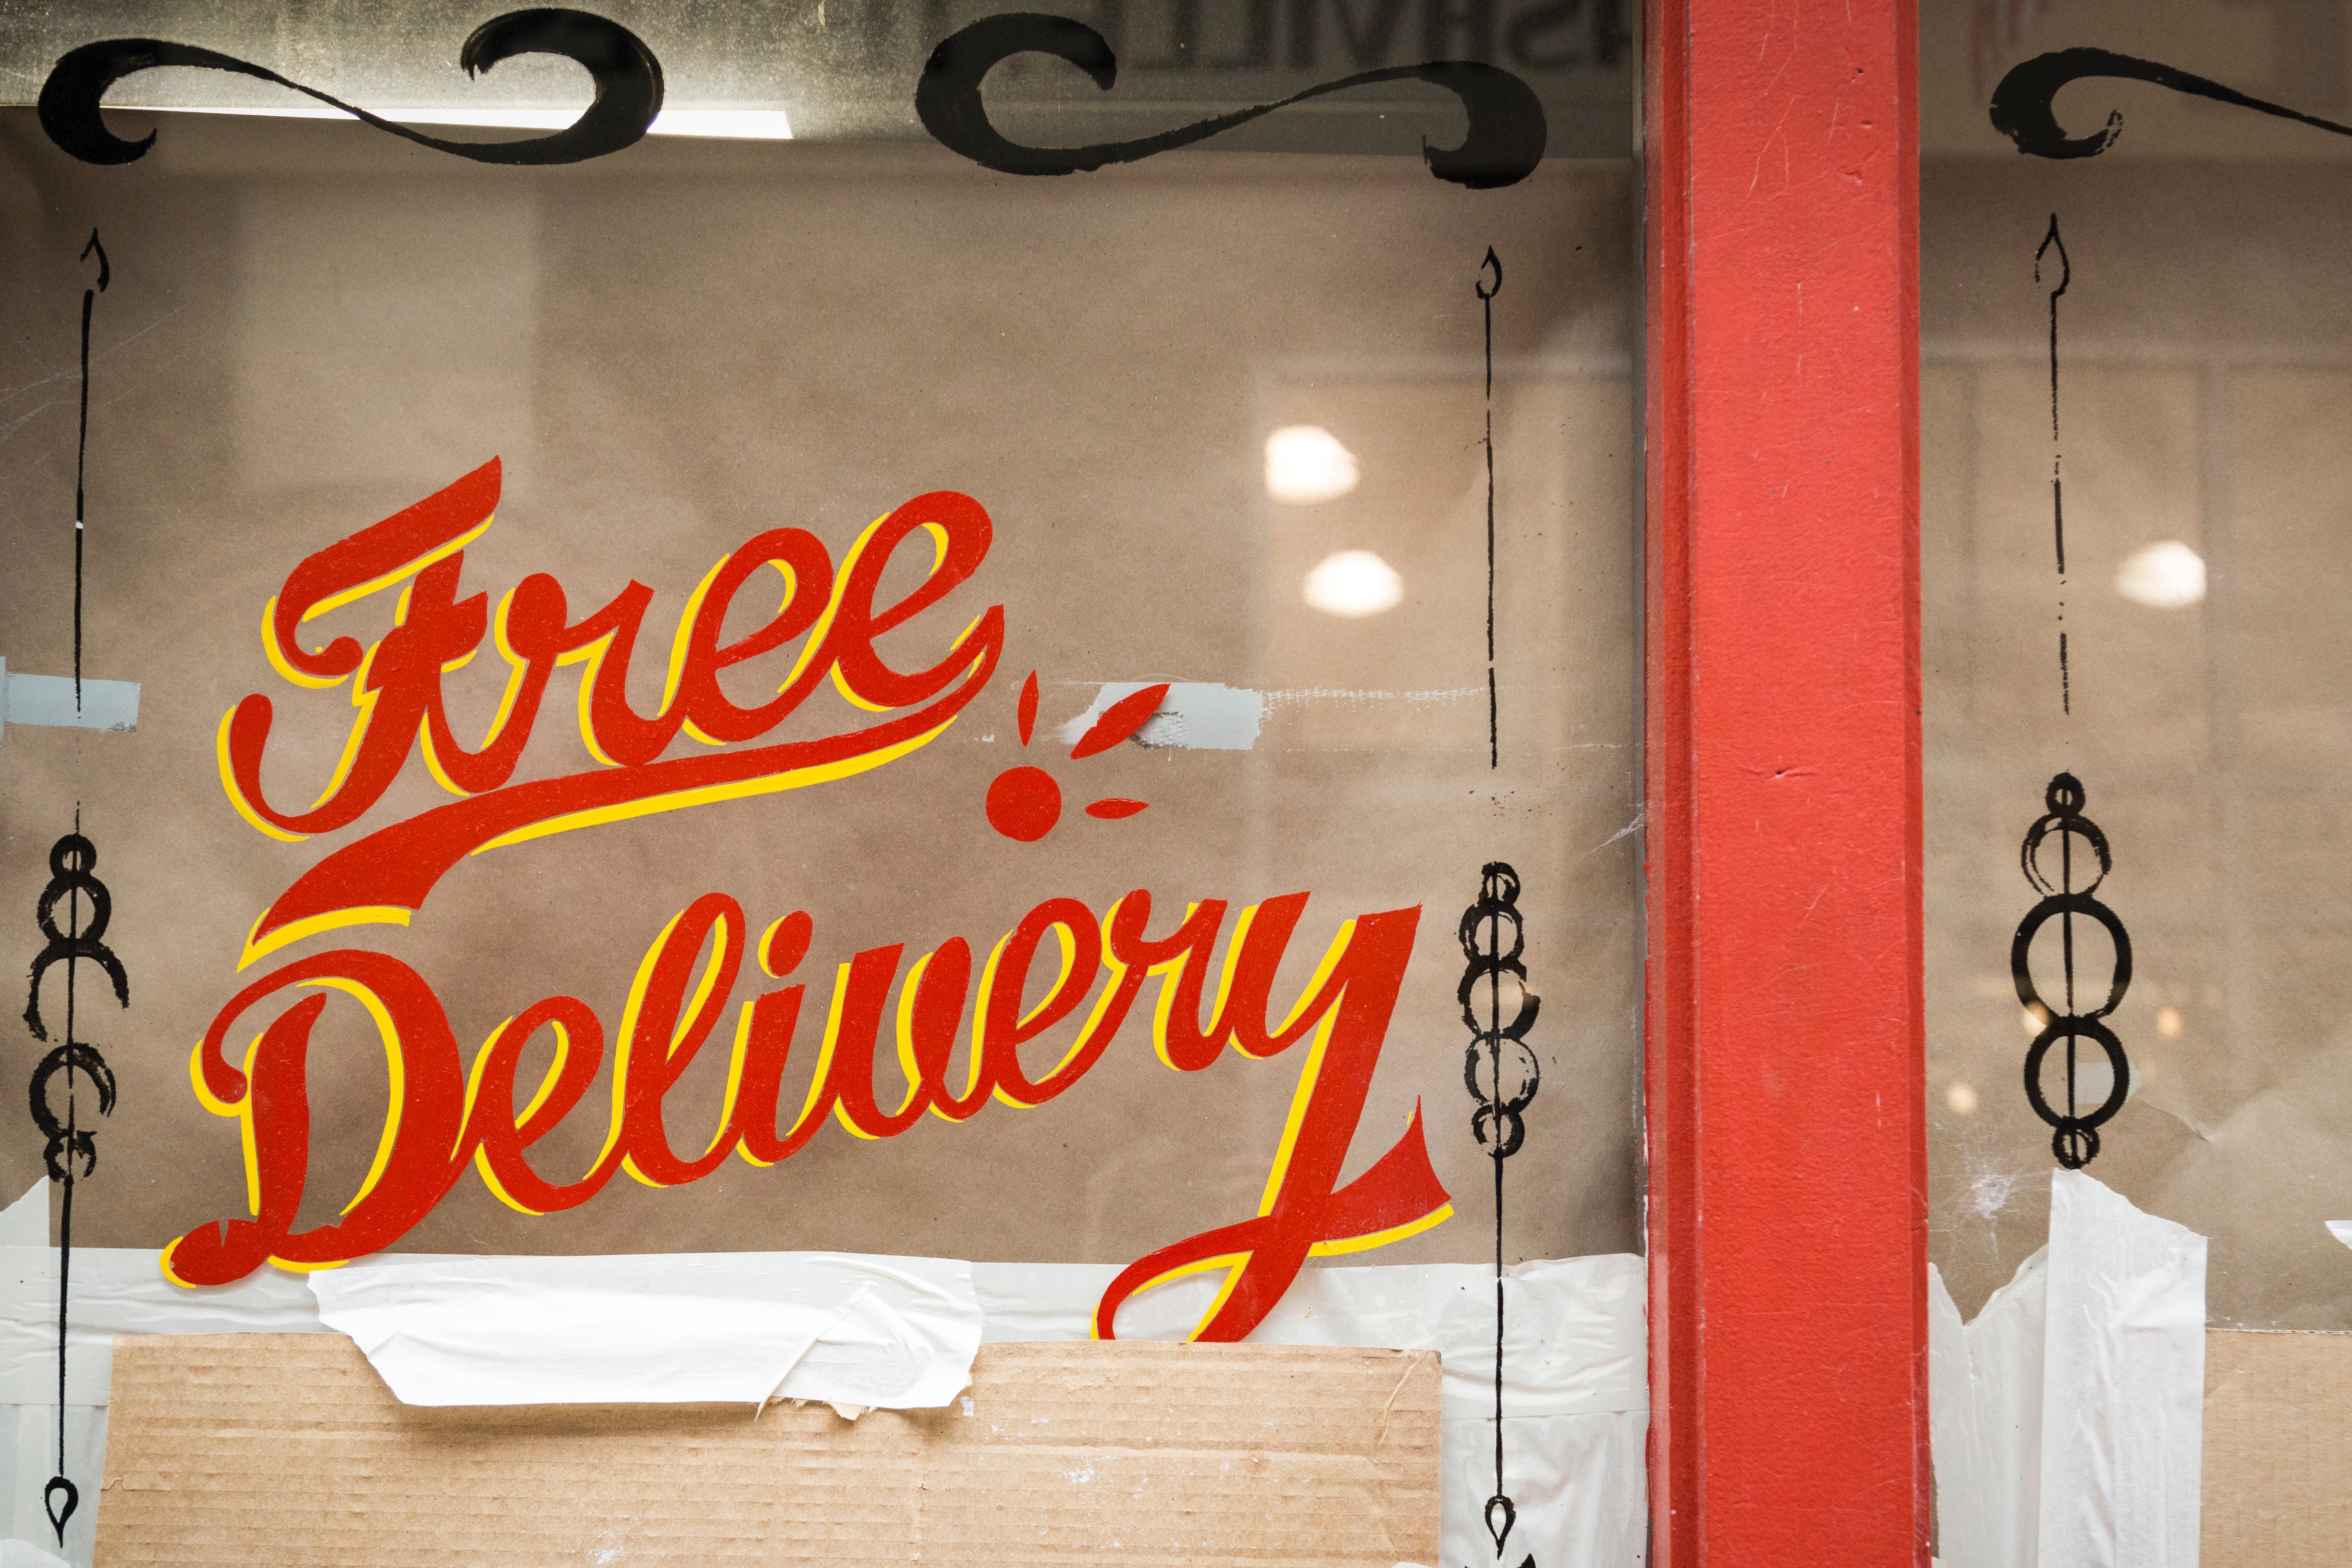 Jimmy John's Sets Delivery Strategy On Its Own Terms